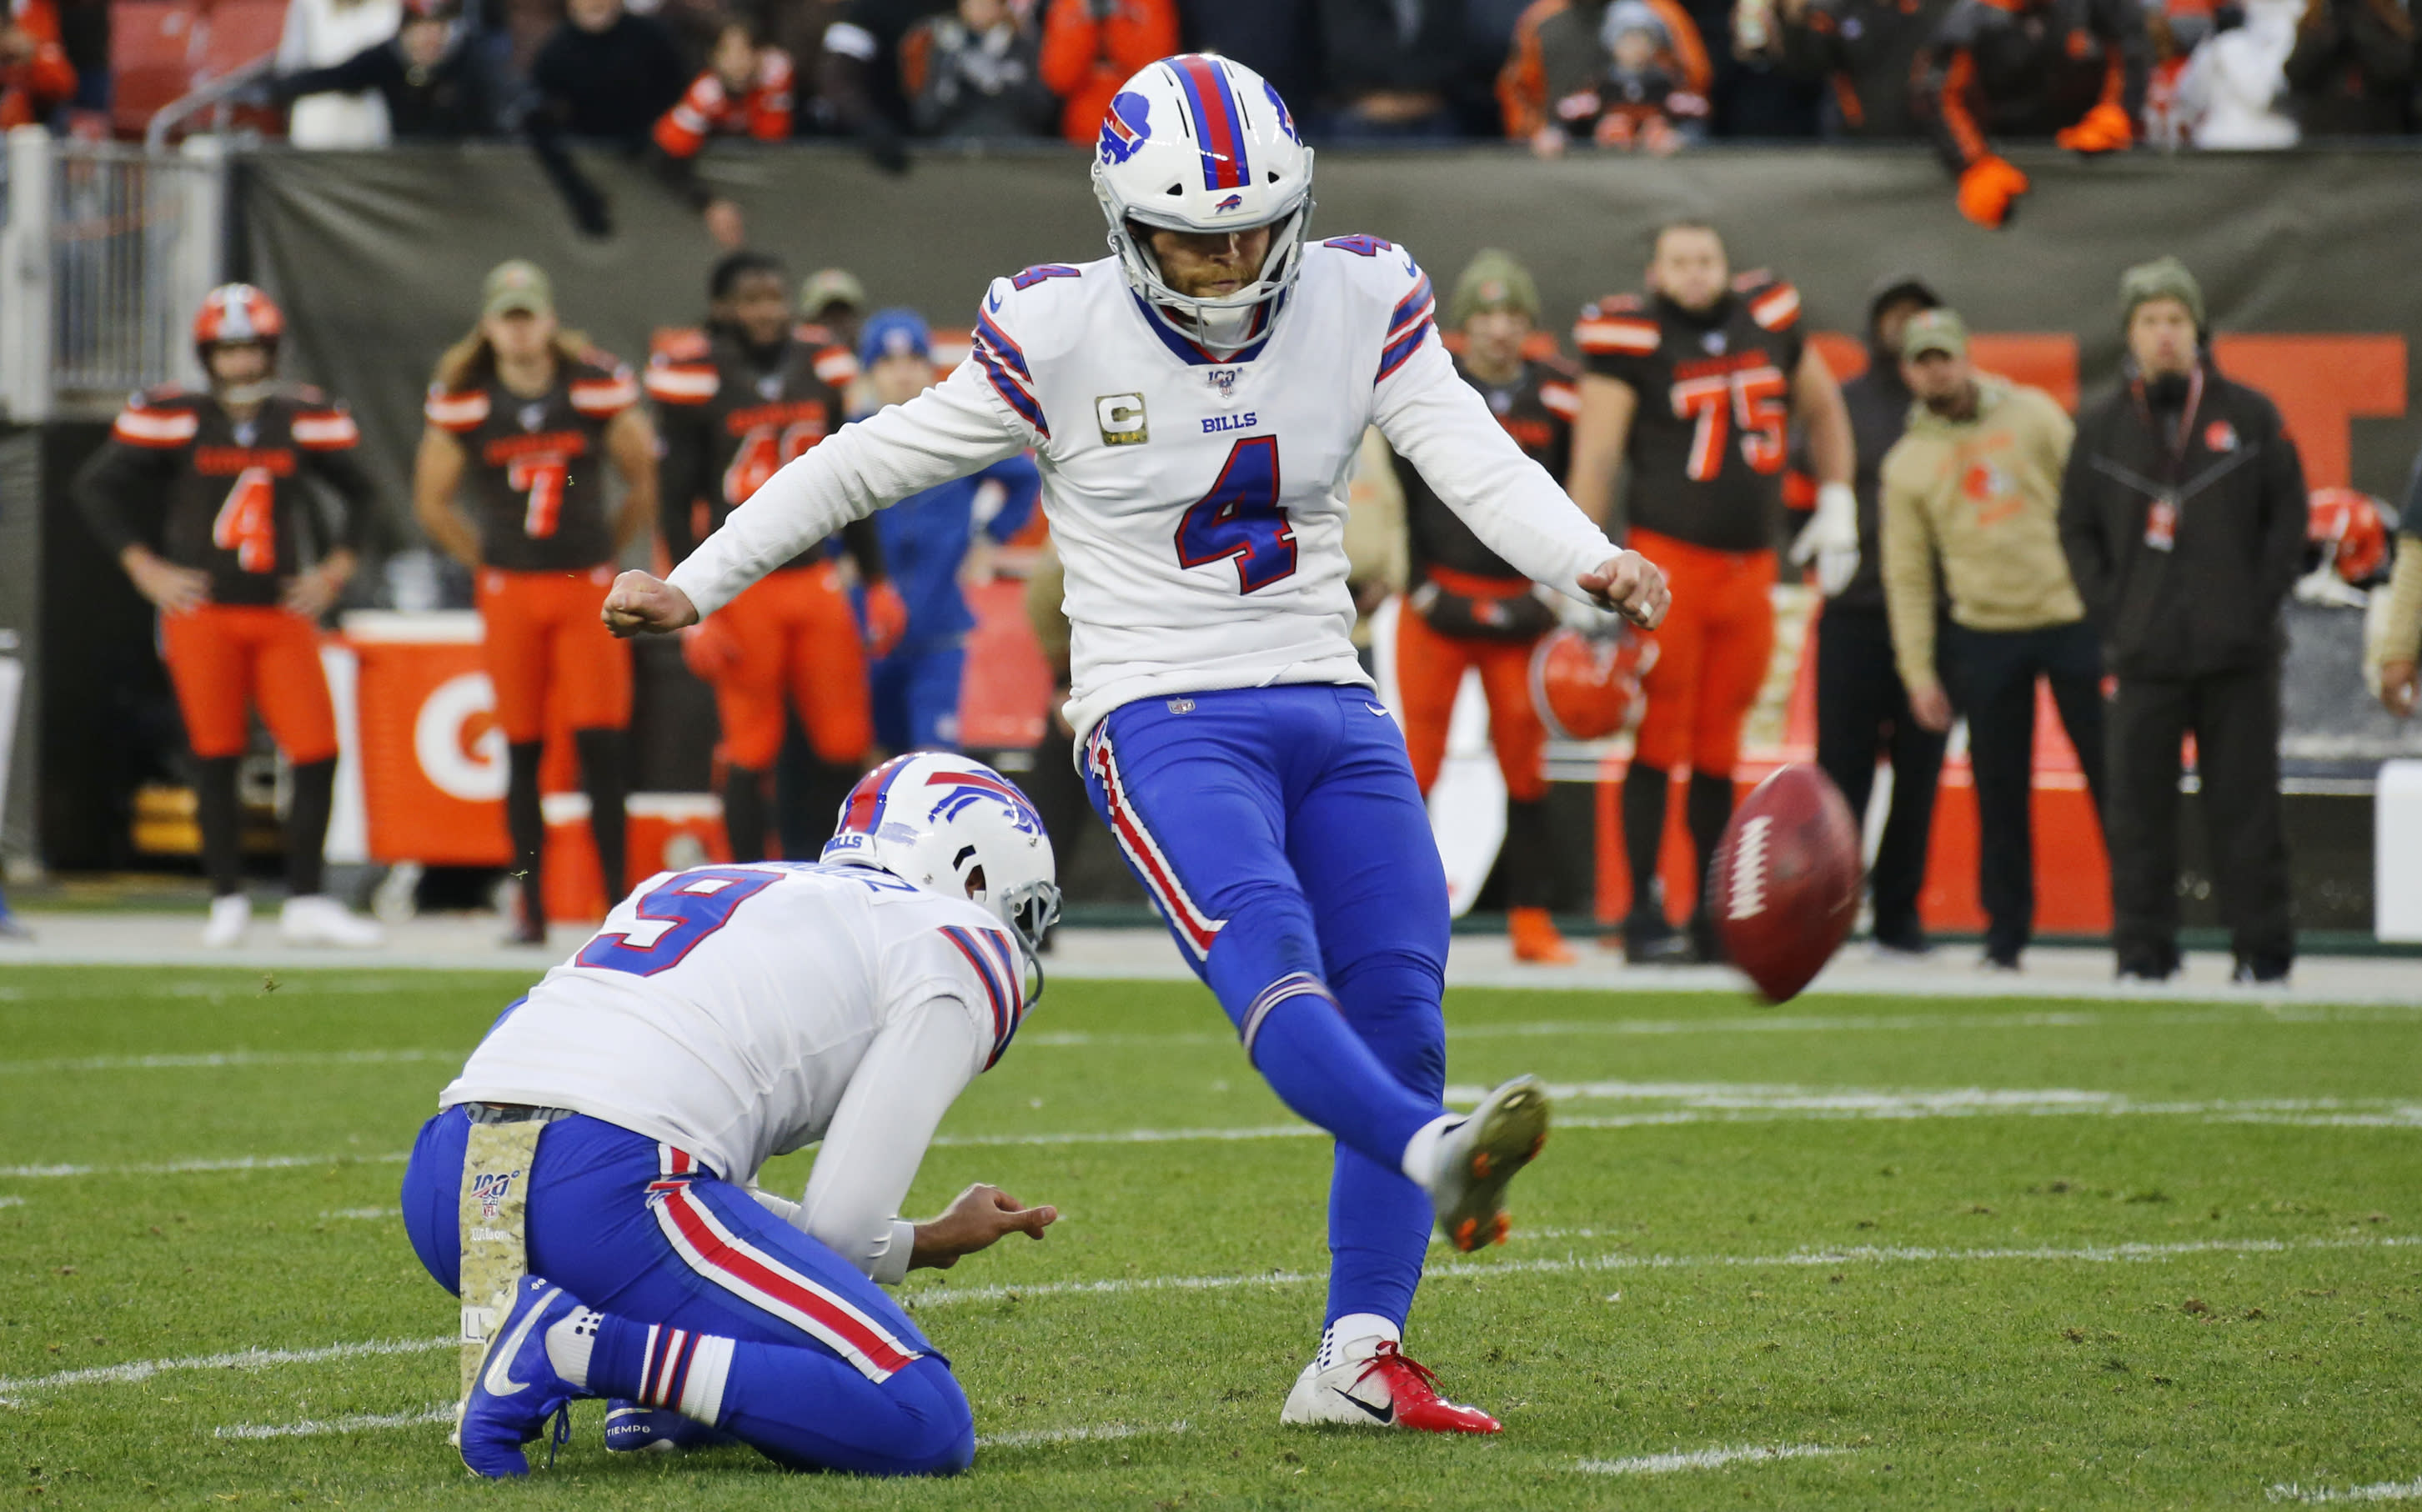 Buffalo Bills kicker Stephen Hauschka (4) misses a 53-yard field goal late during the second half of an NFL football game against the Cleveland Browns, Sunday, Nov. 10, 2019, in Cleveland. (AP Photo/Ron Schwane)